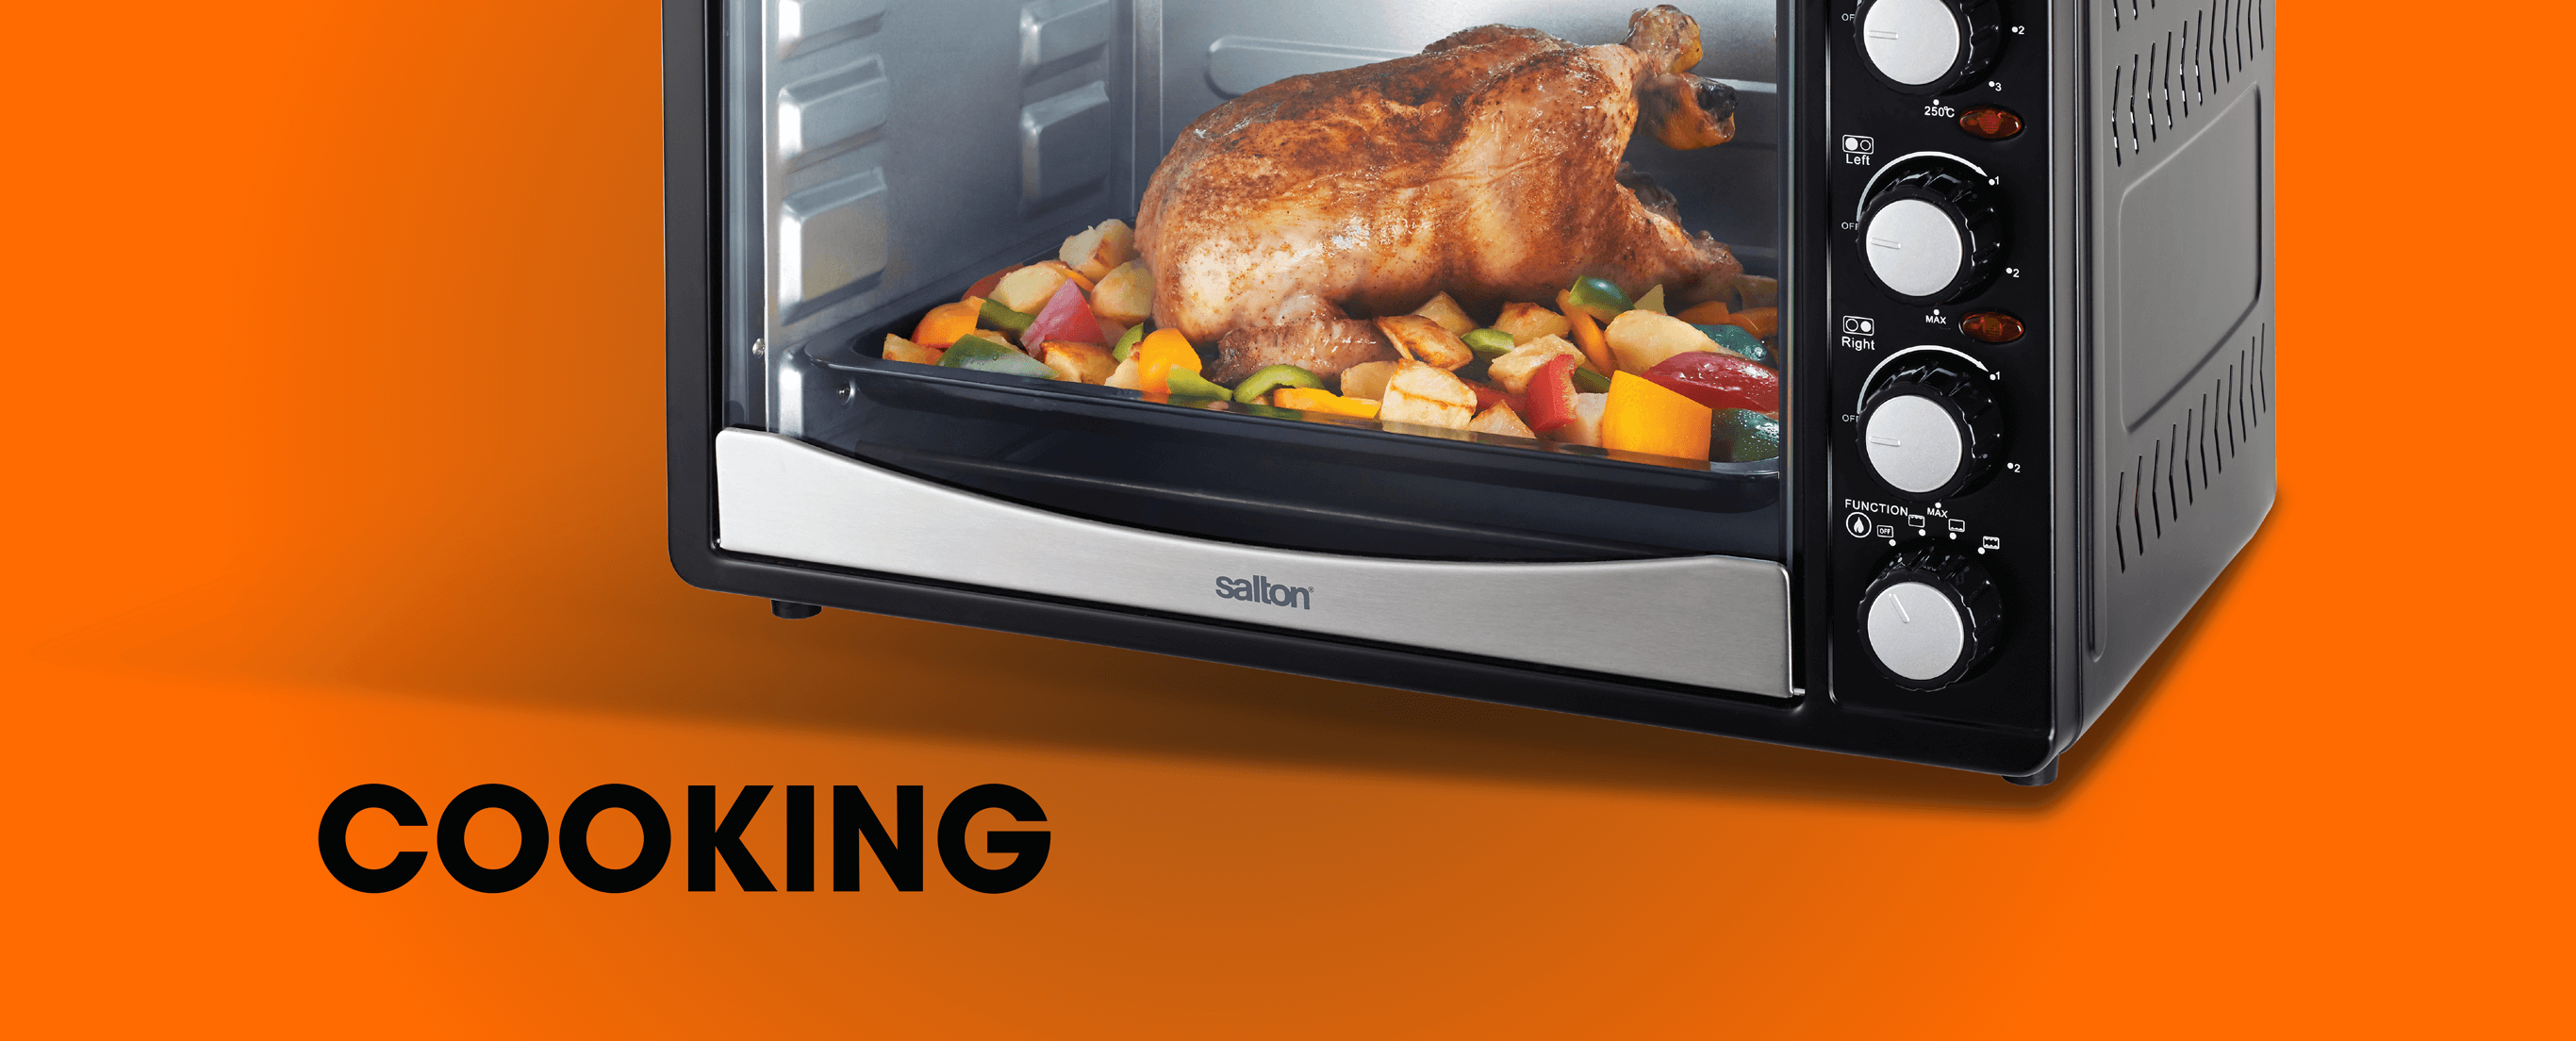 Cooking Appliances by Salton